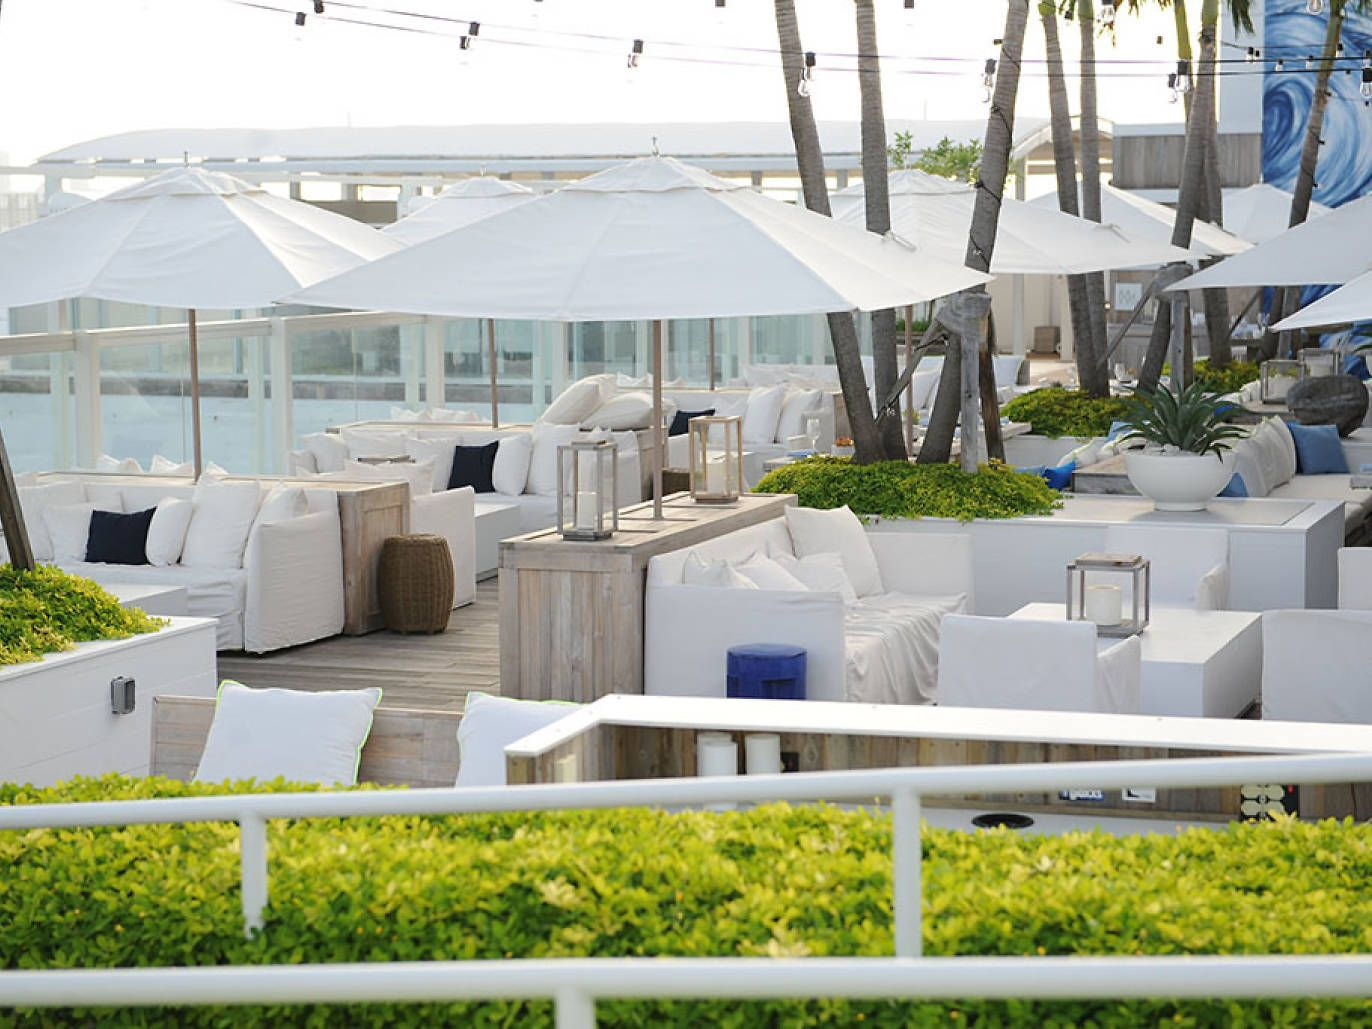 The Absolute Best Rooftop Bars In Miami From Wynwood To South Beach Best Rooftop Bars Rooftop Bar Rooftop Bar Bangkok